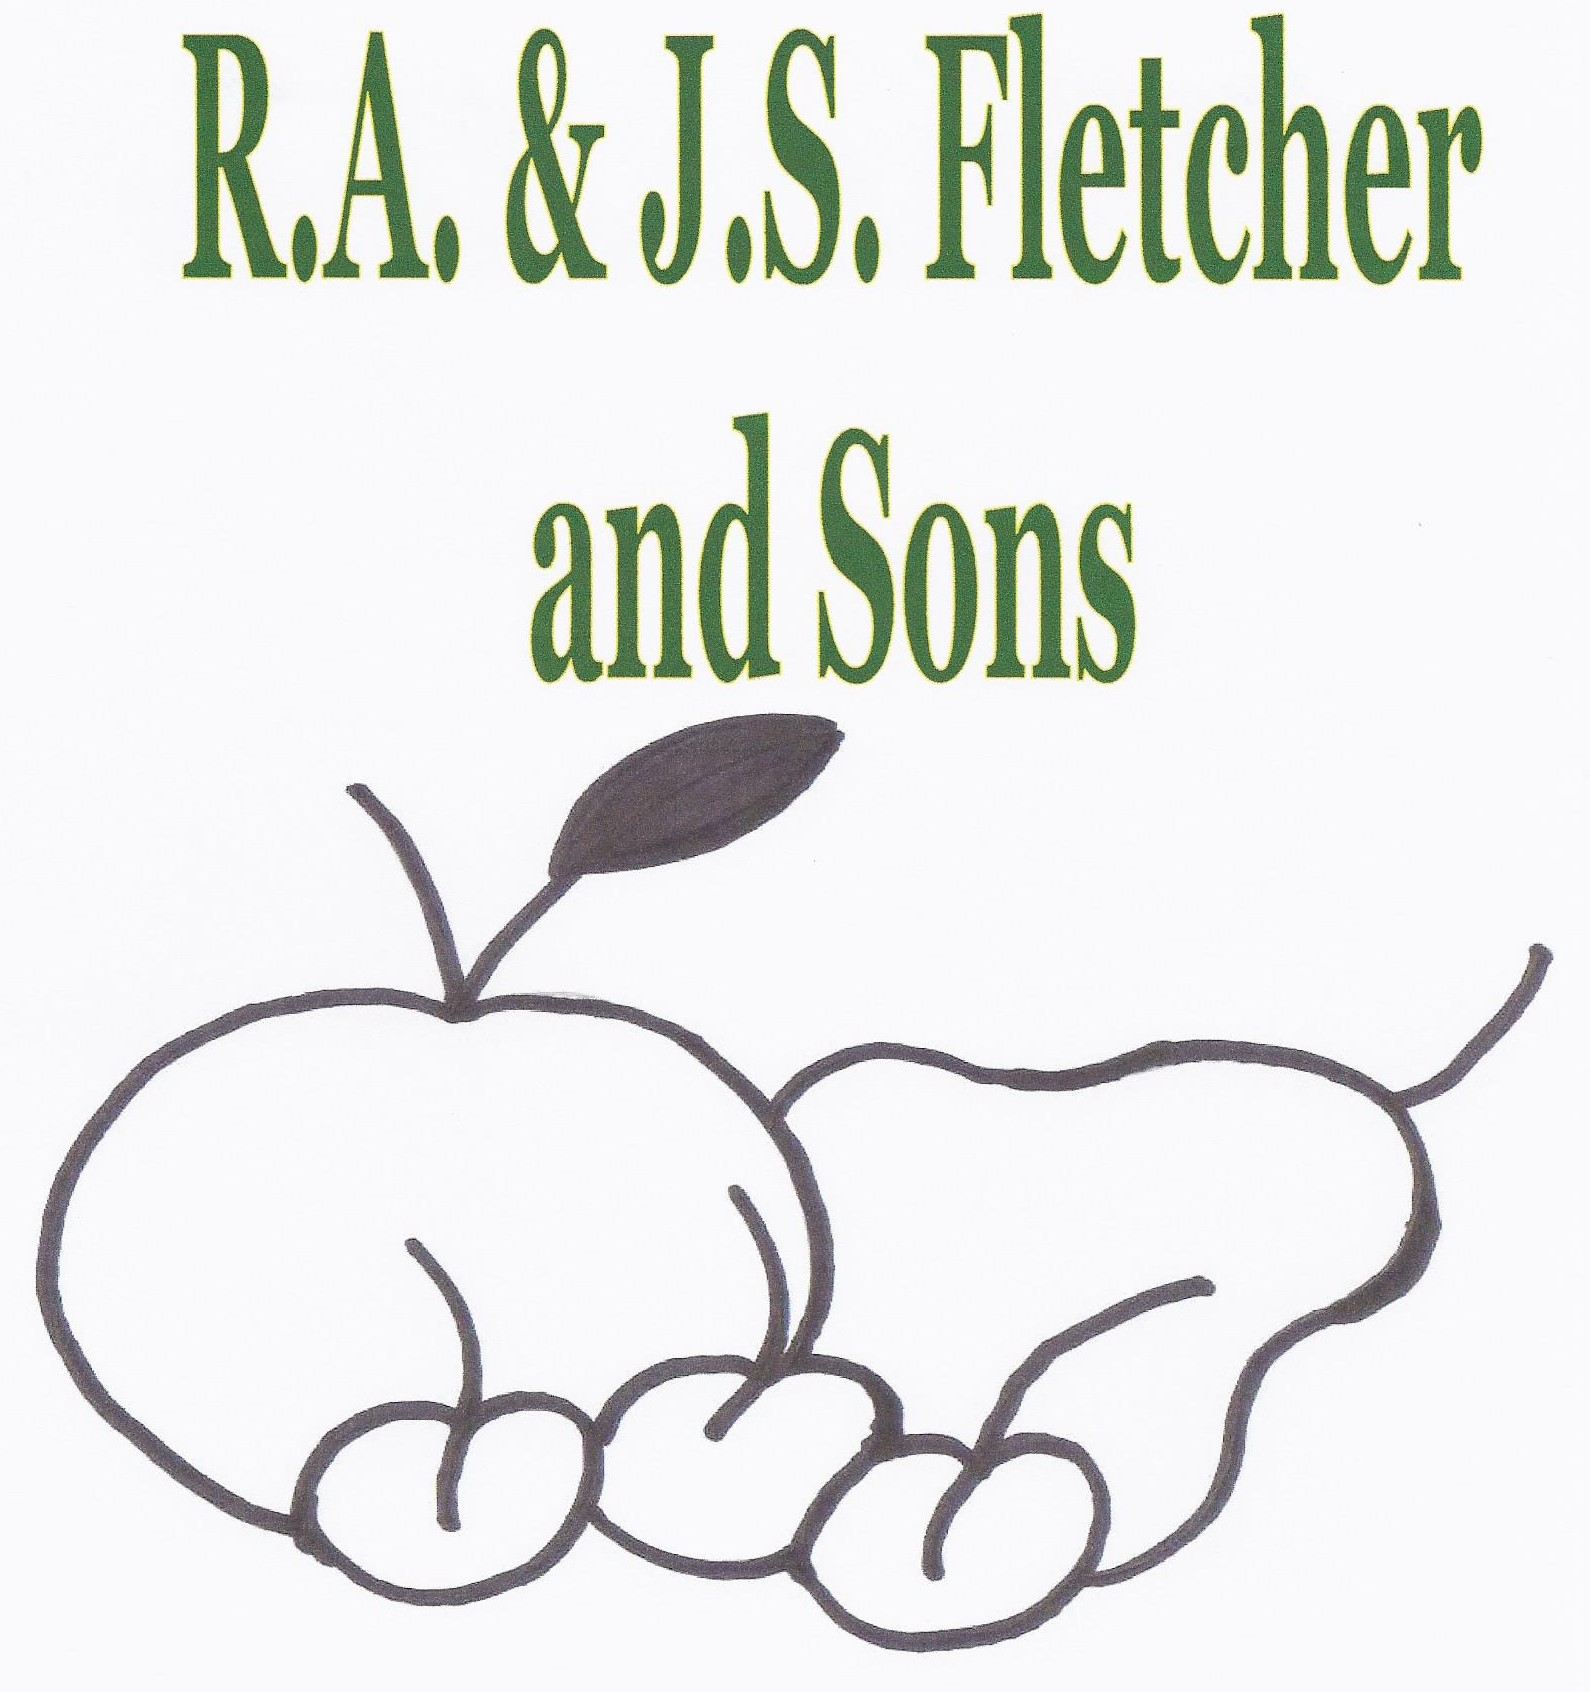 R.A. & J.S. Fletcher and Sons